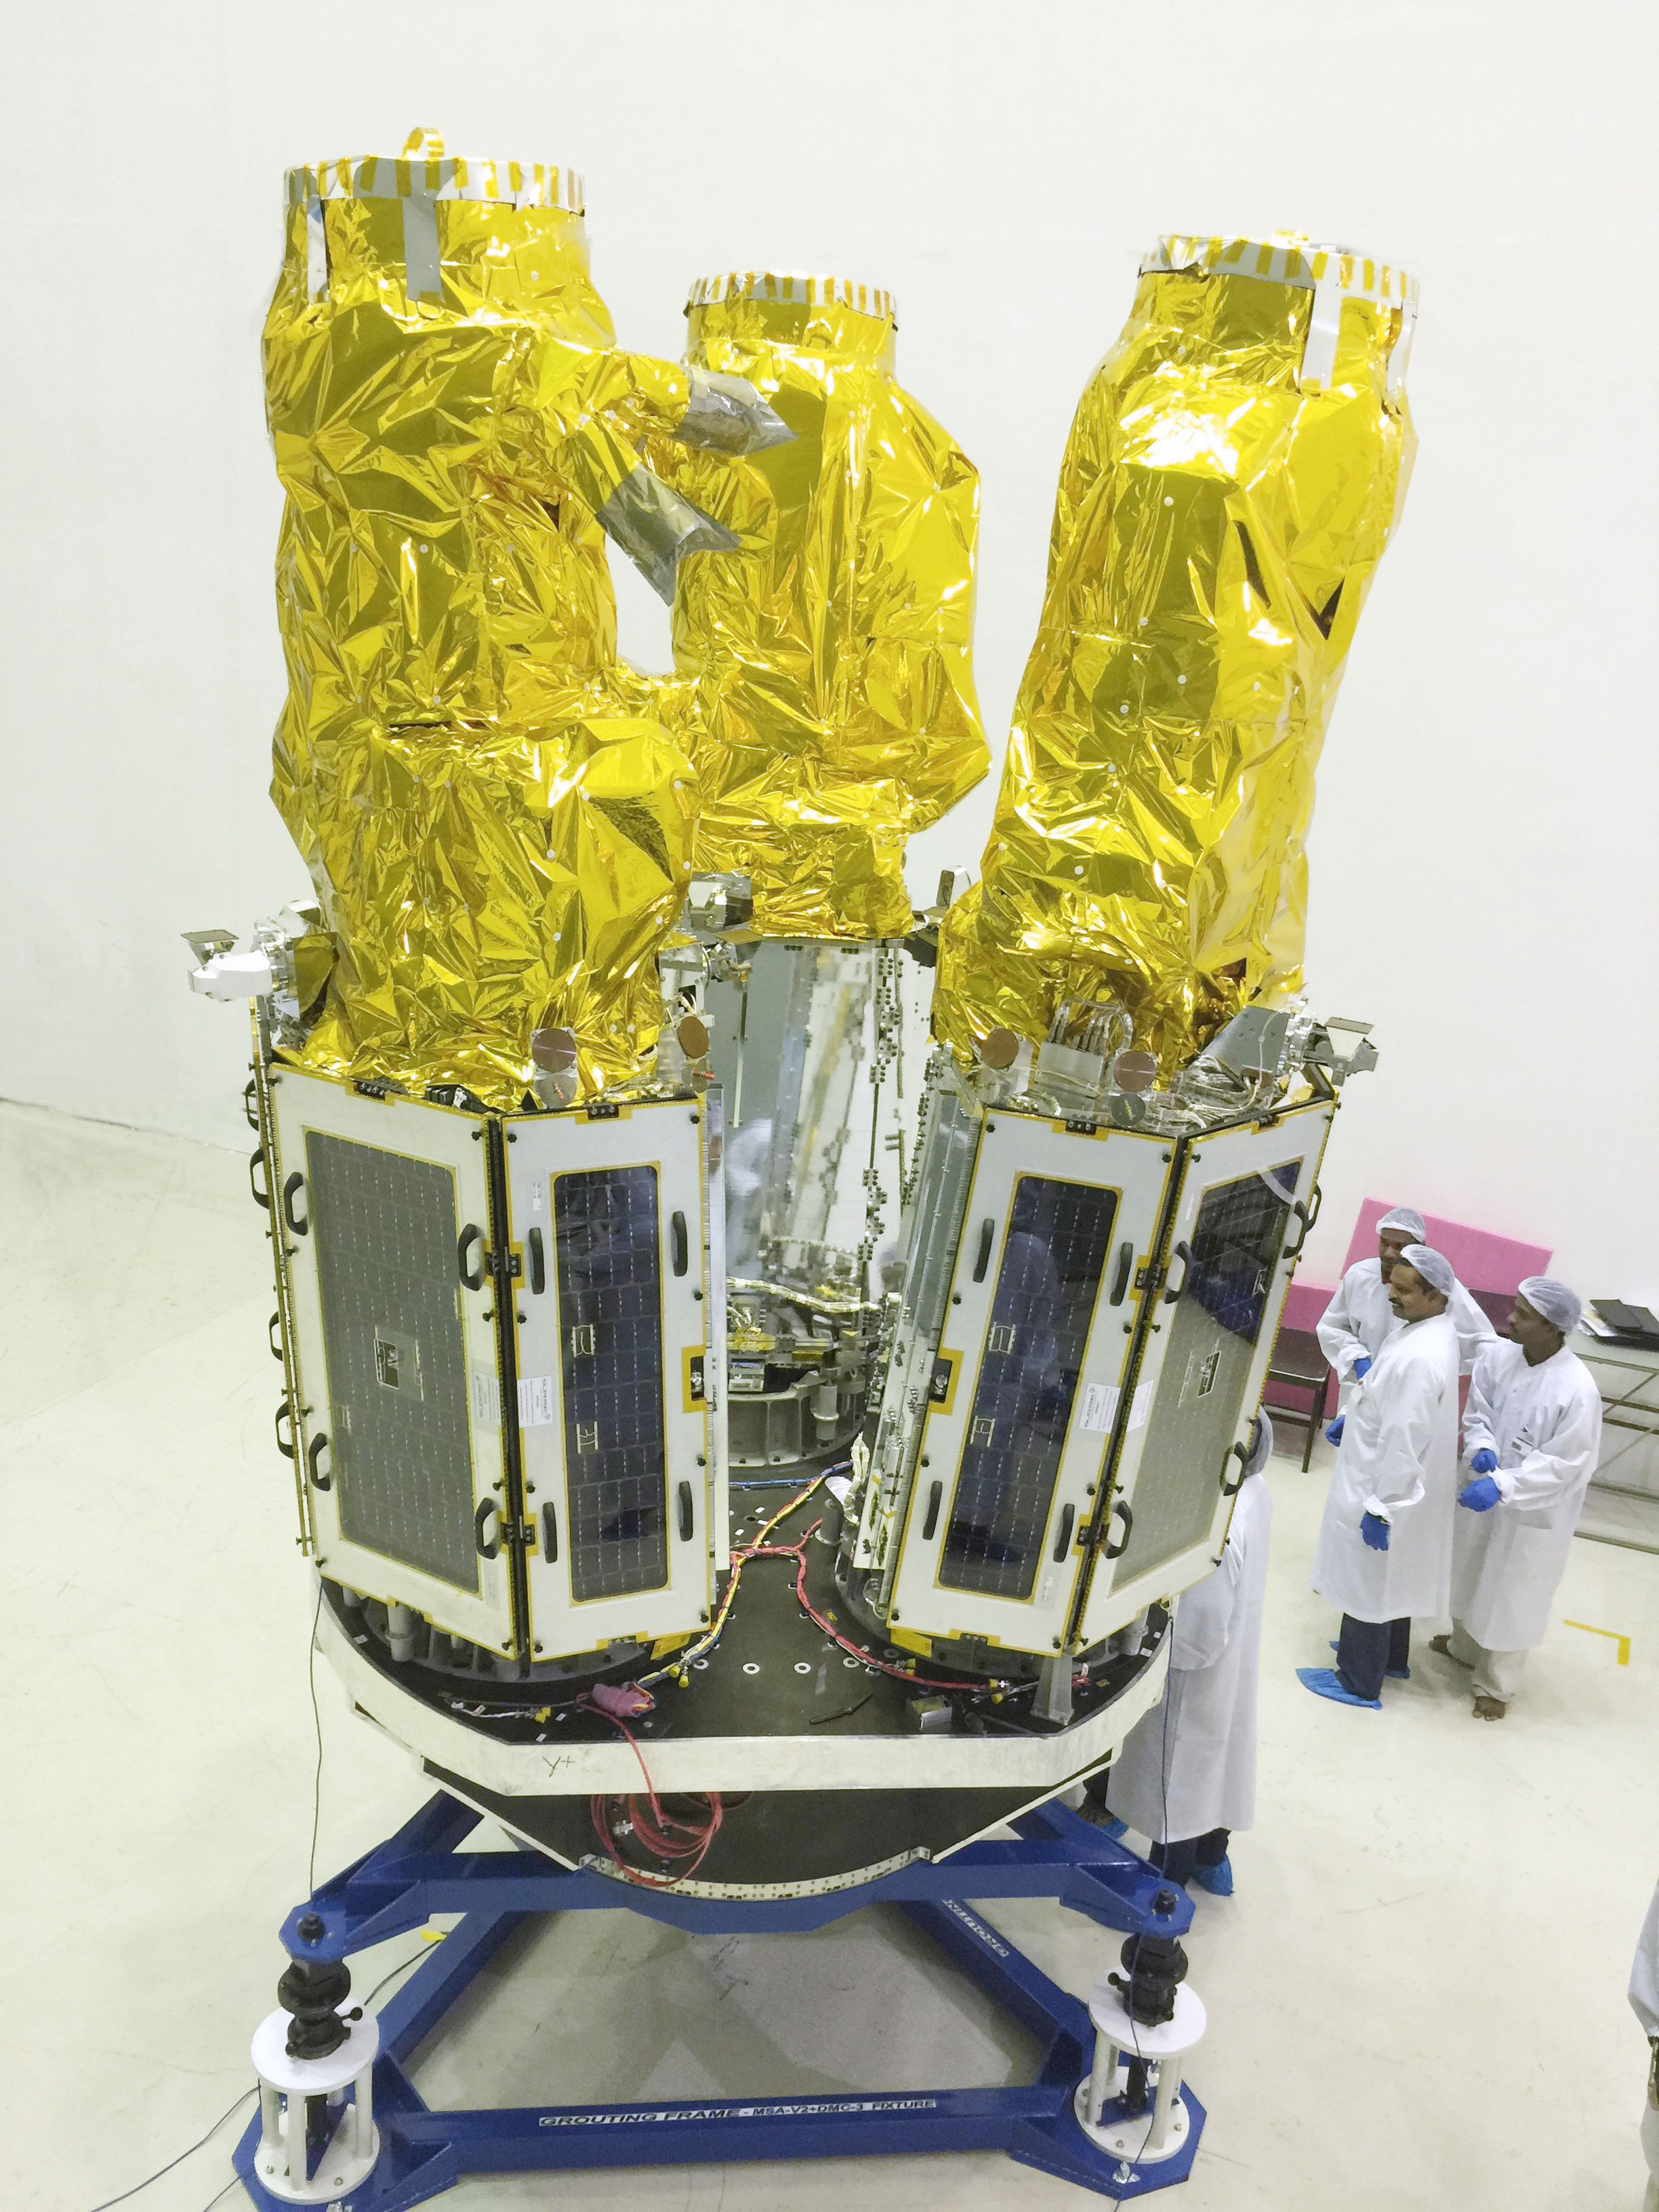 The three DMC3 satellites on the launch vehicle adaptor at launch site: Satish Dhawan Space Centre, Sriharikota, India